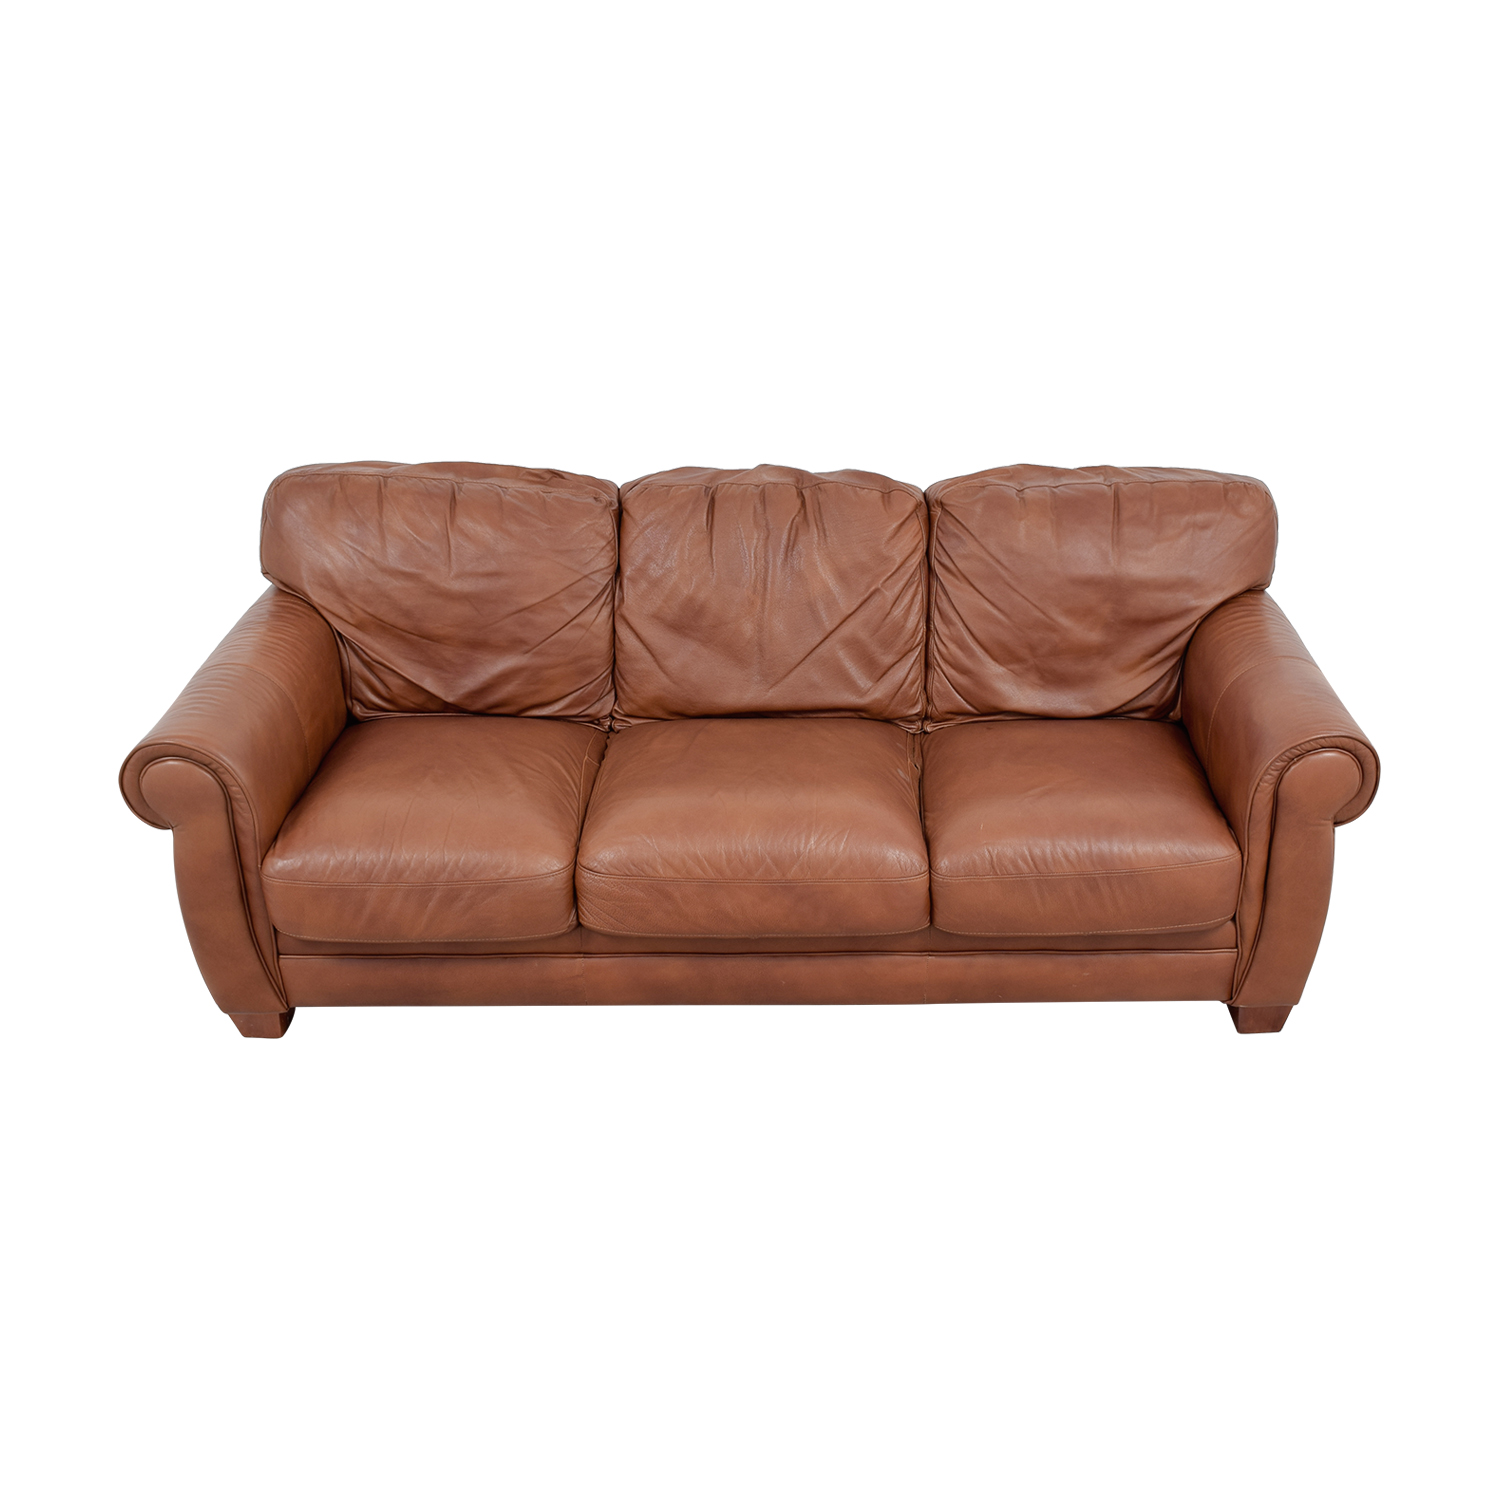 buy Klaussner Brown Leather Three-Cushion Couch Klaussner